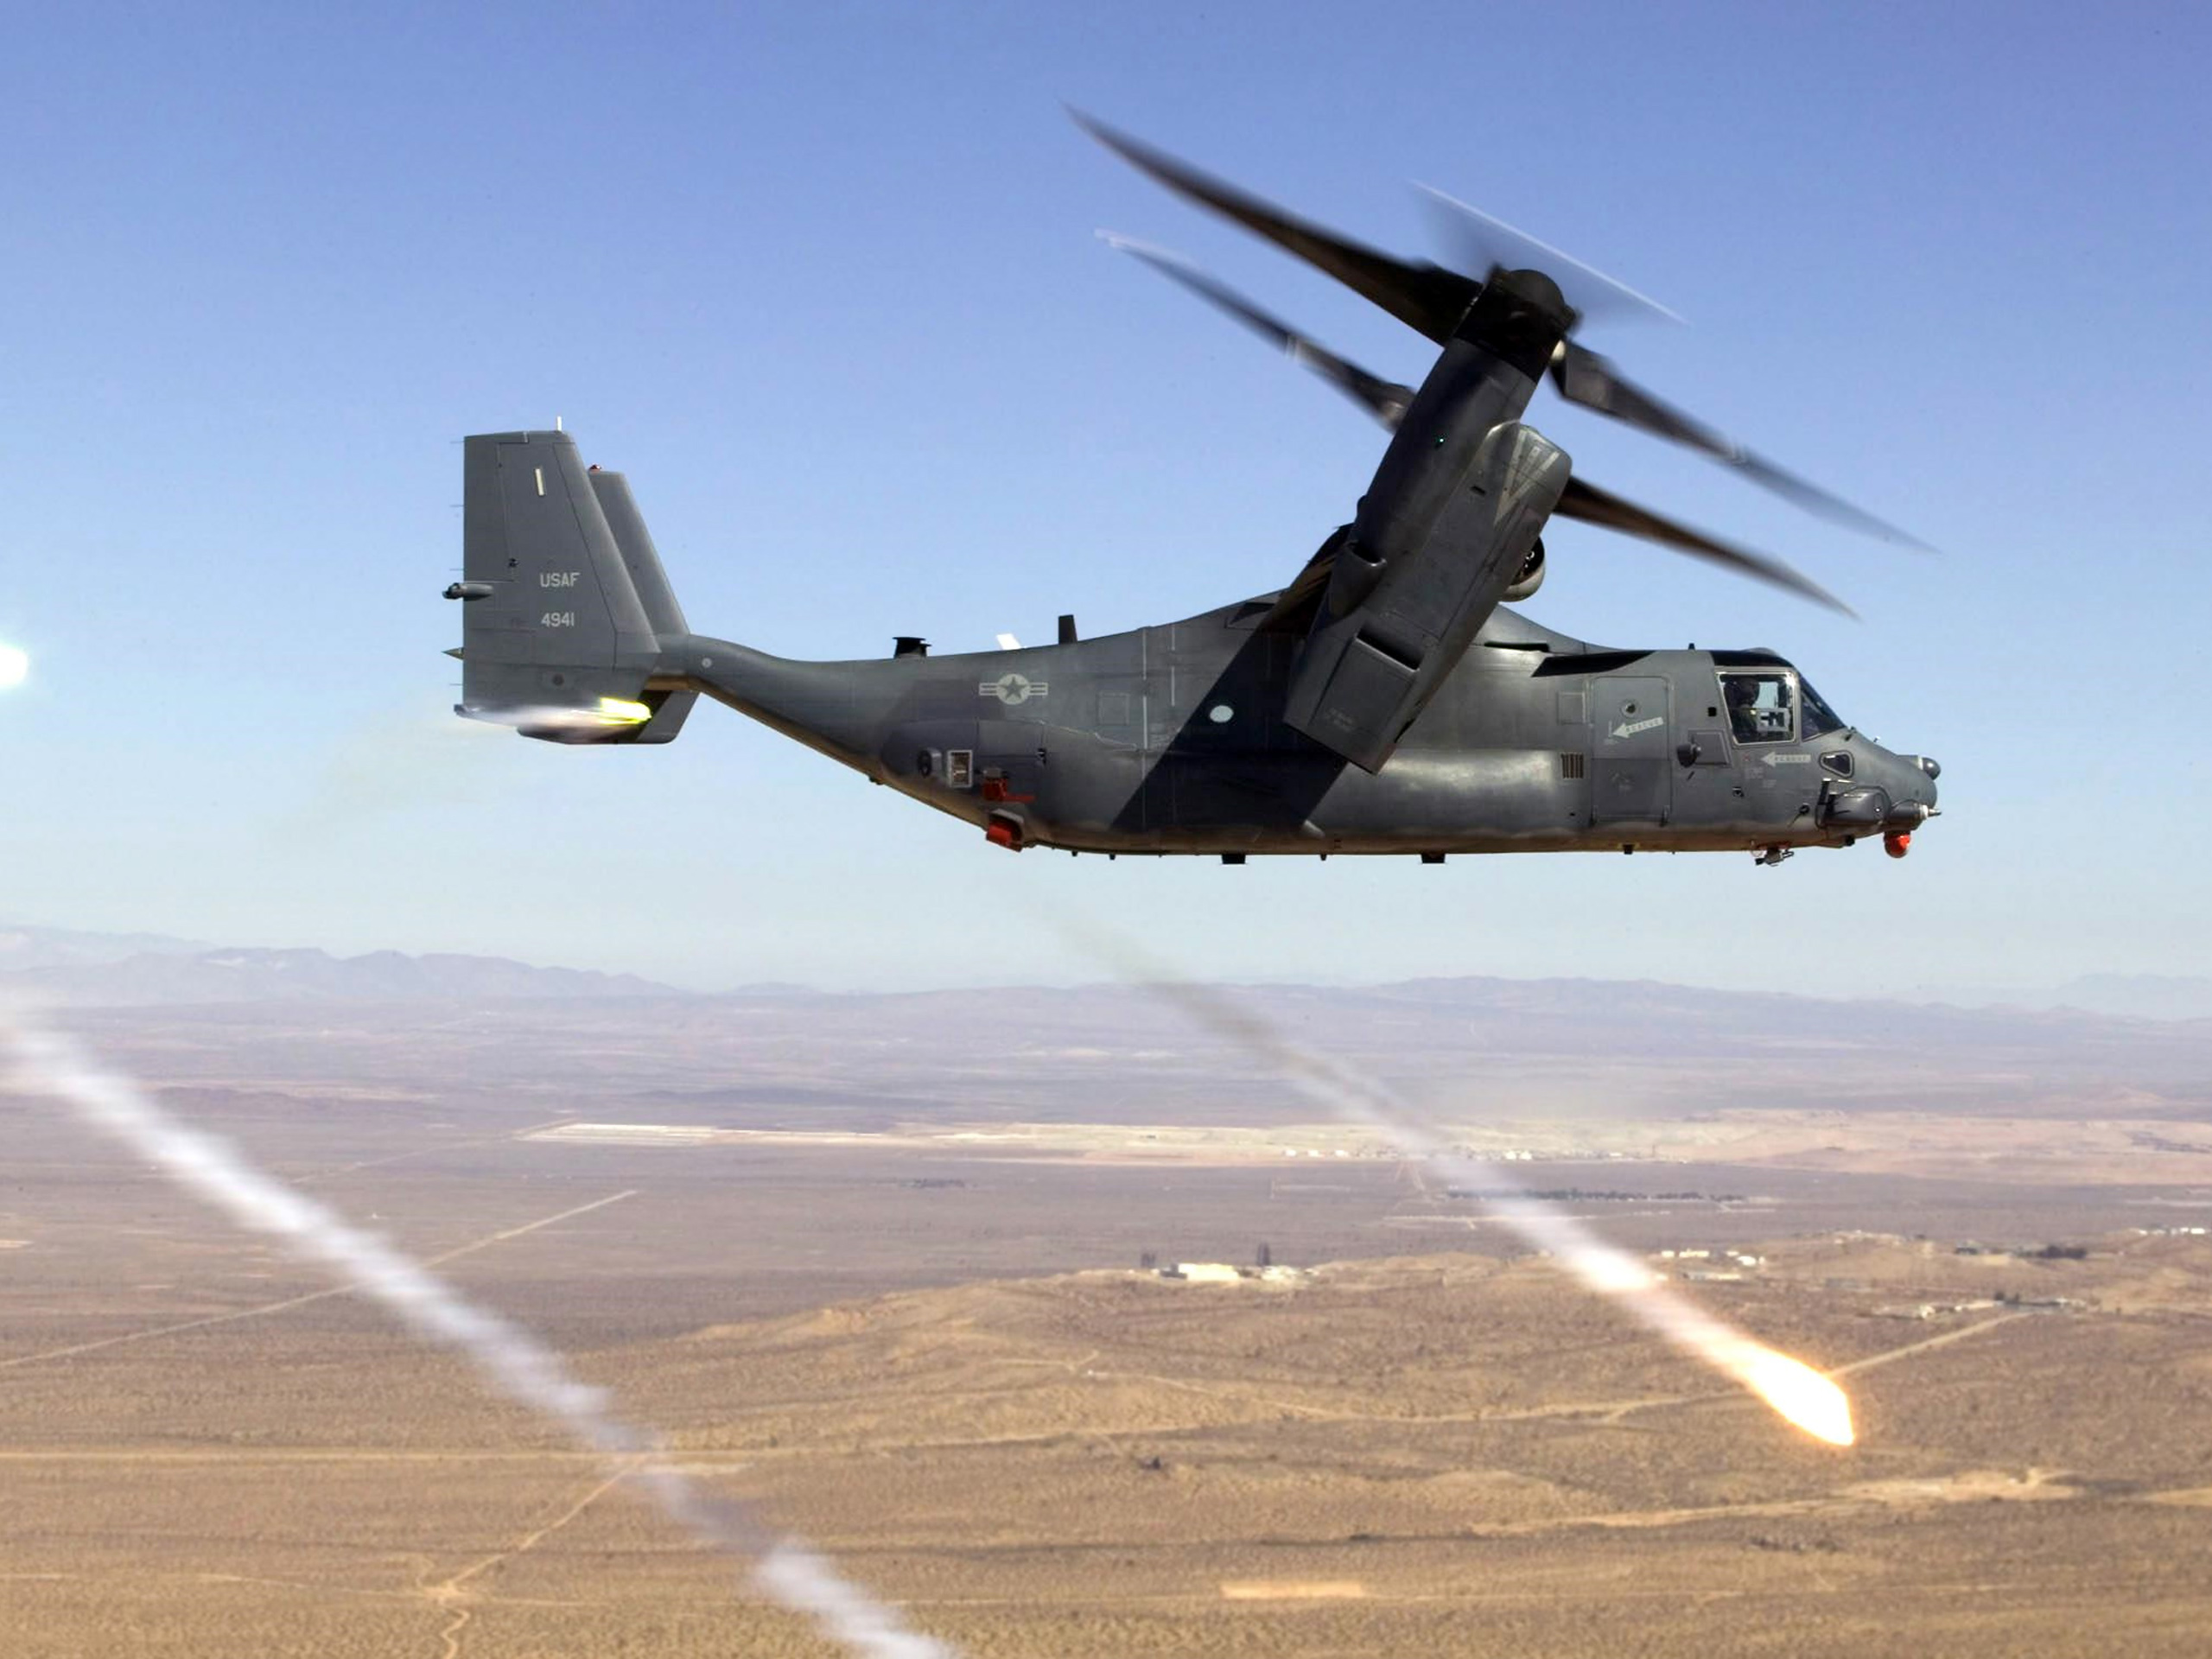 osprey helicopter wallpaper - photo #2